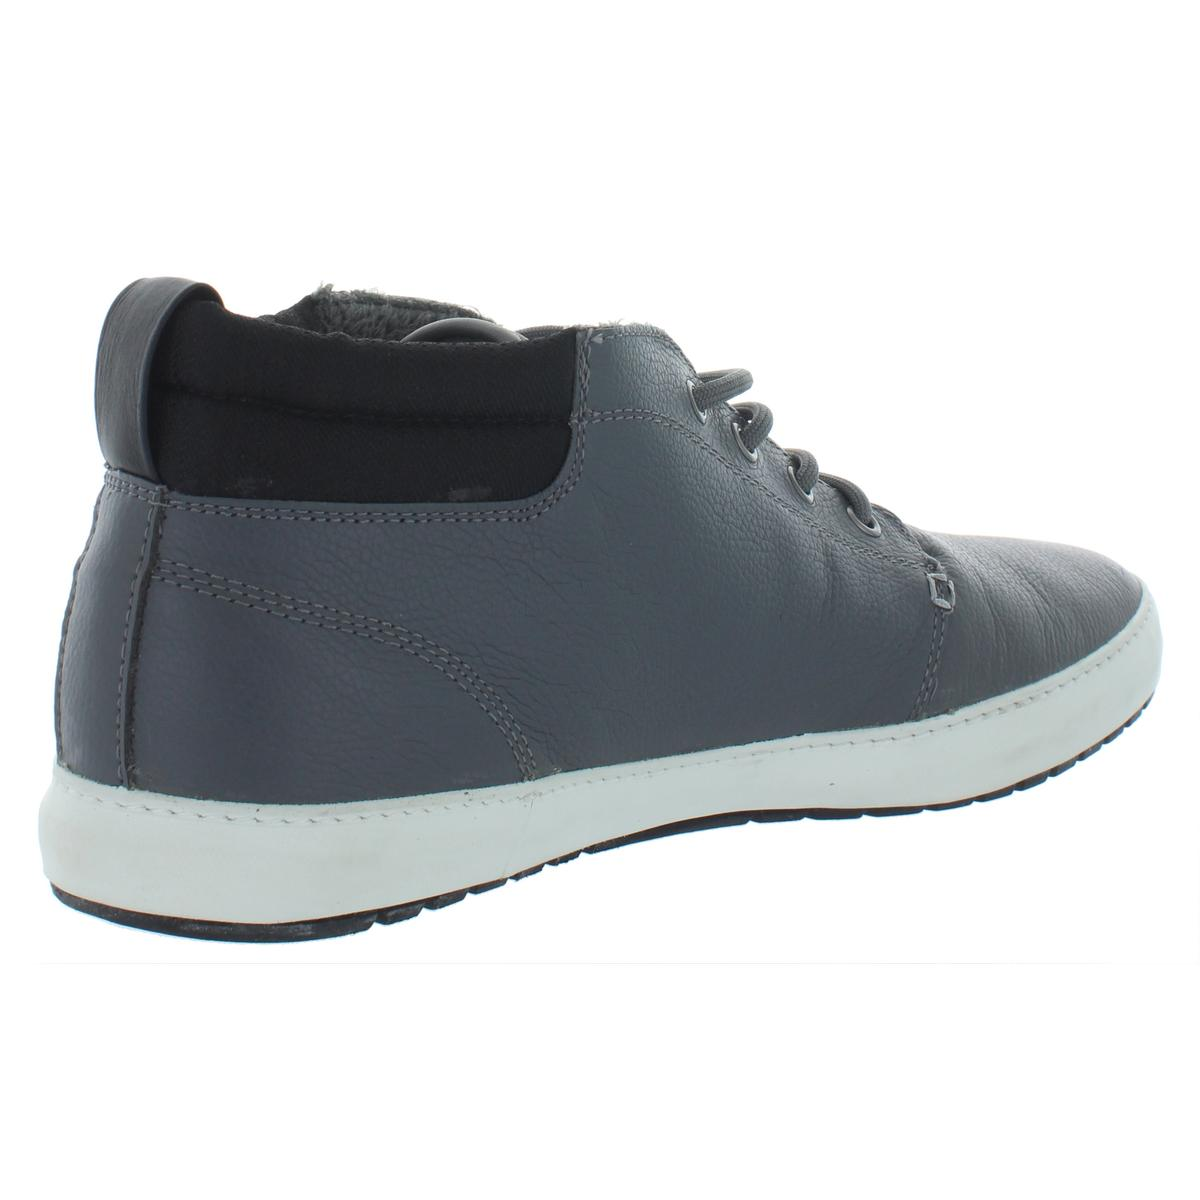 Lacoste-Men-039-s-Ampthill-Leather-Chukka-Mid-Top-Fashion-Sneakers-Shoes thumbnail 6